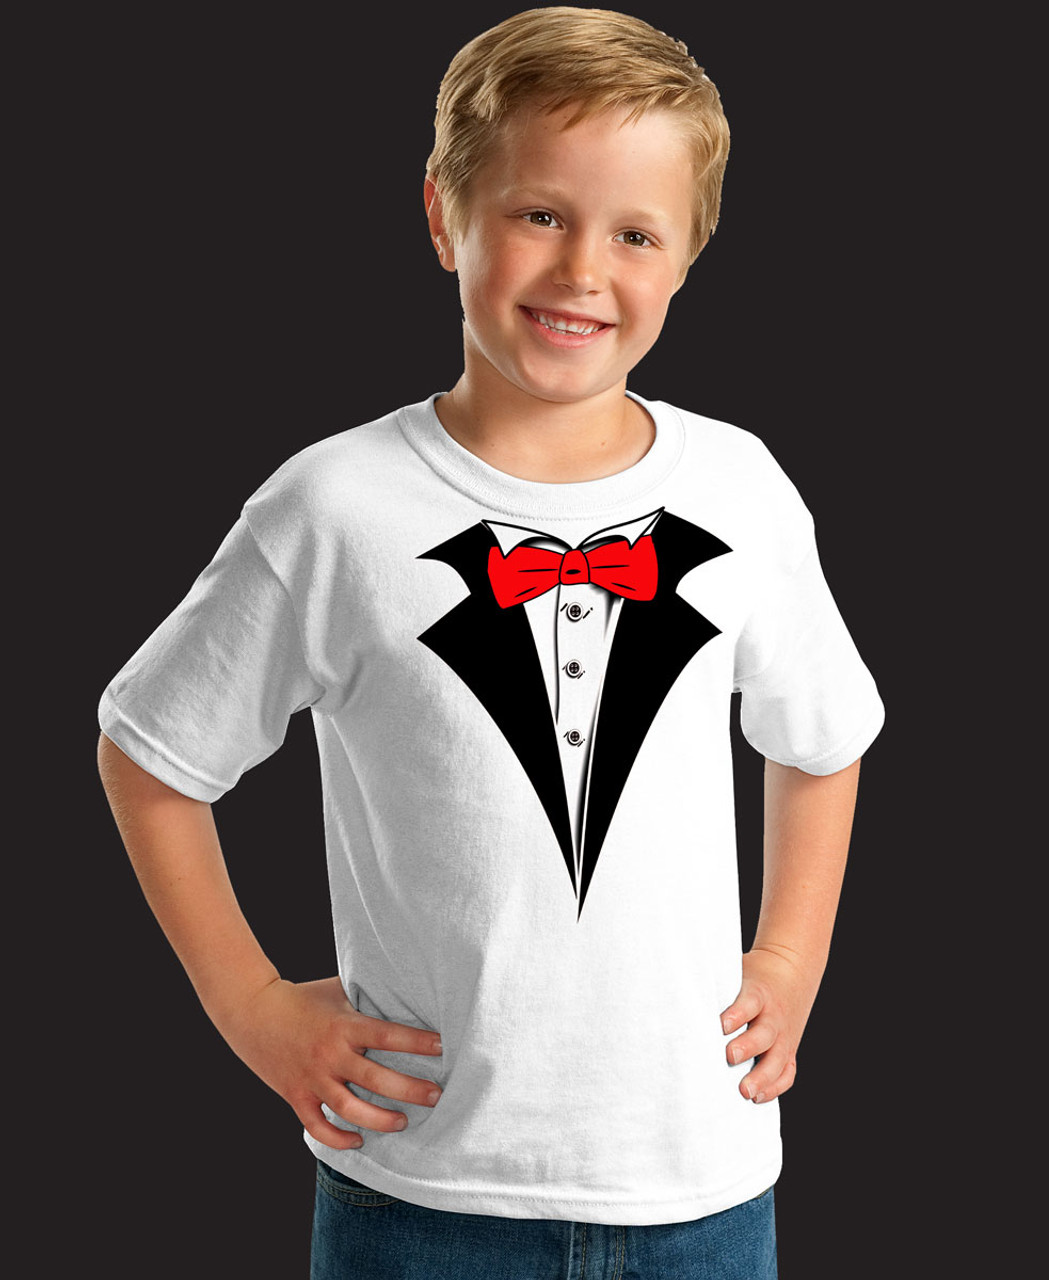 White Tuxedo Matching Pants Shirt In Desc Roblox - Red Tie Roblox T Shirt Get Robux Gift Card